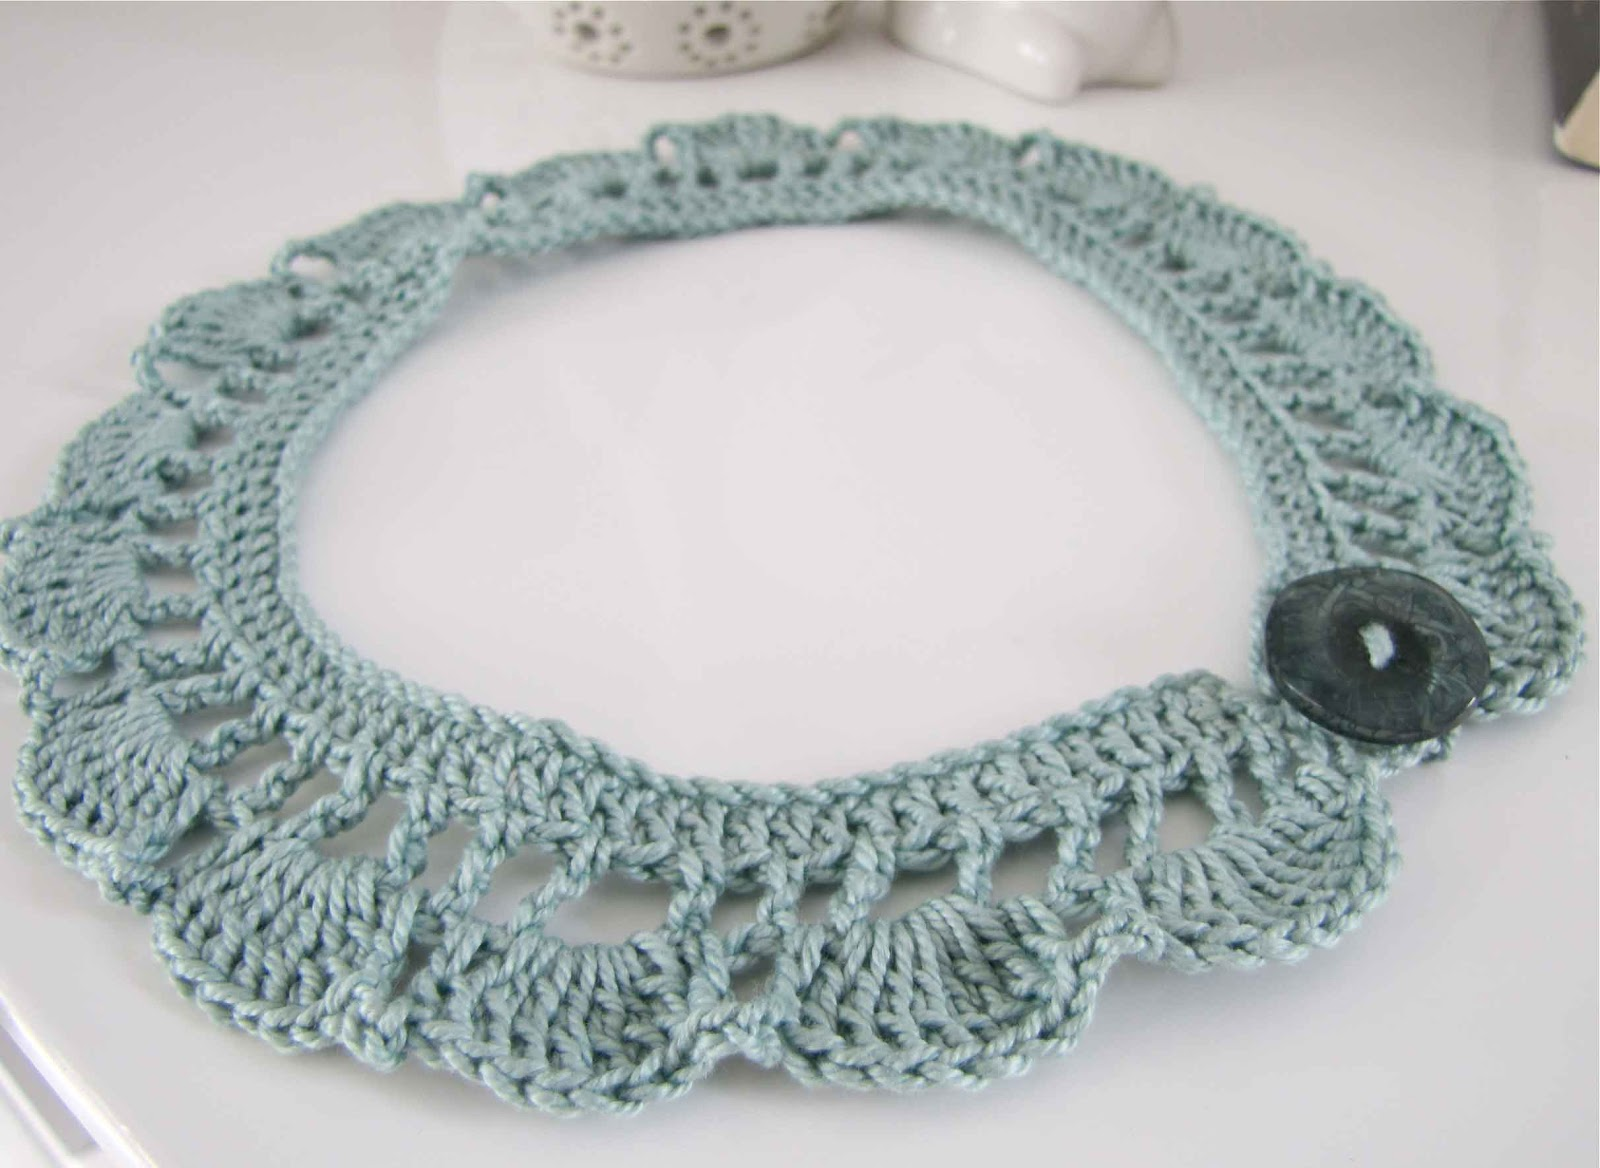 Crochet Necklace : Crochet Necklace